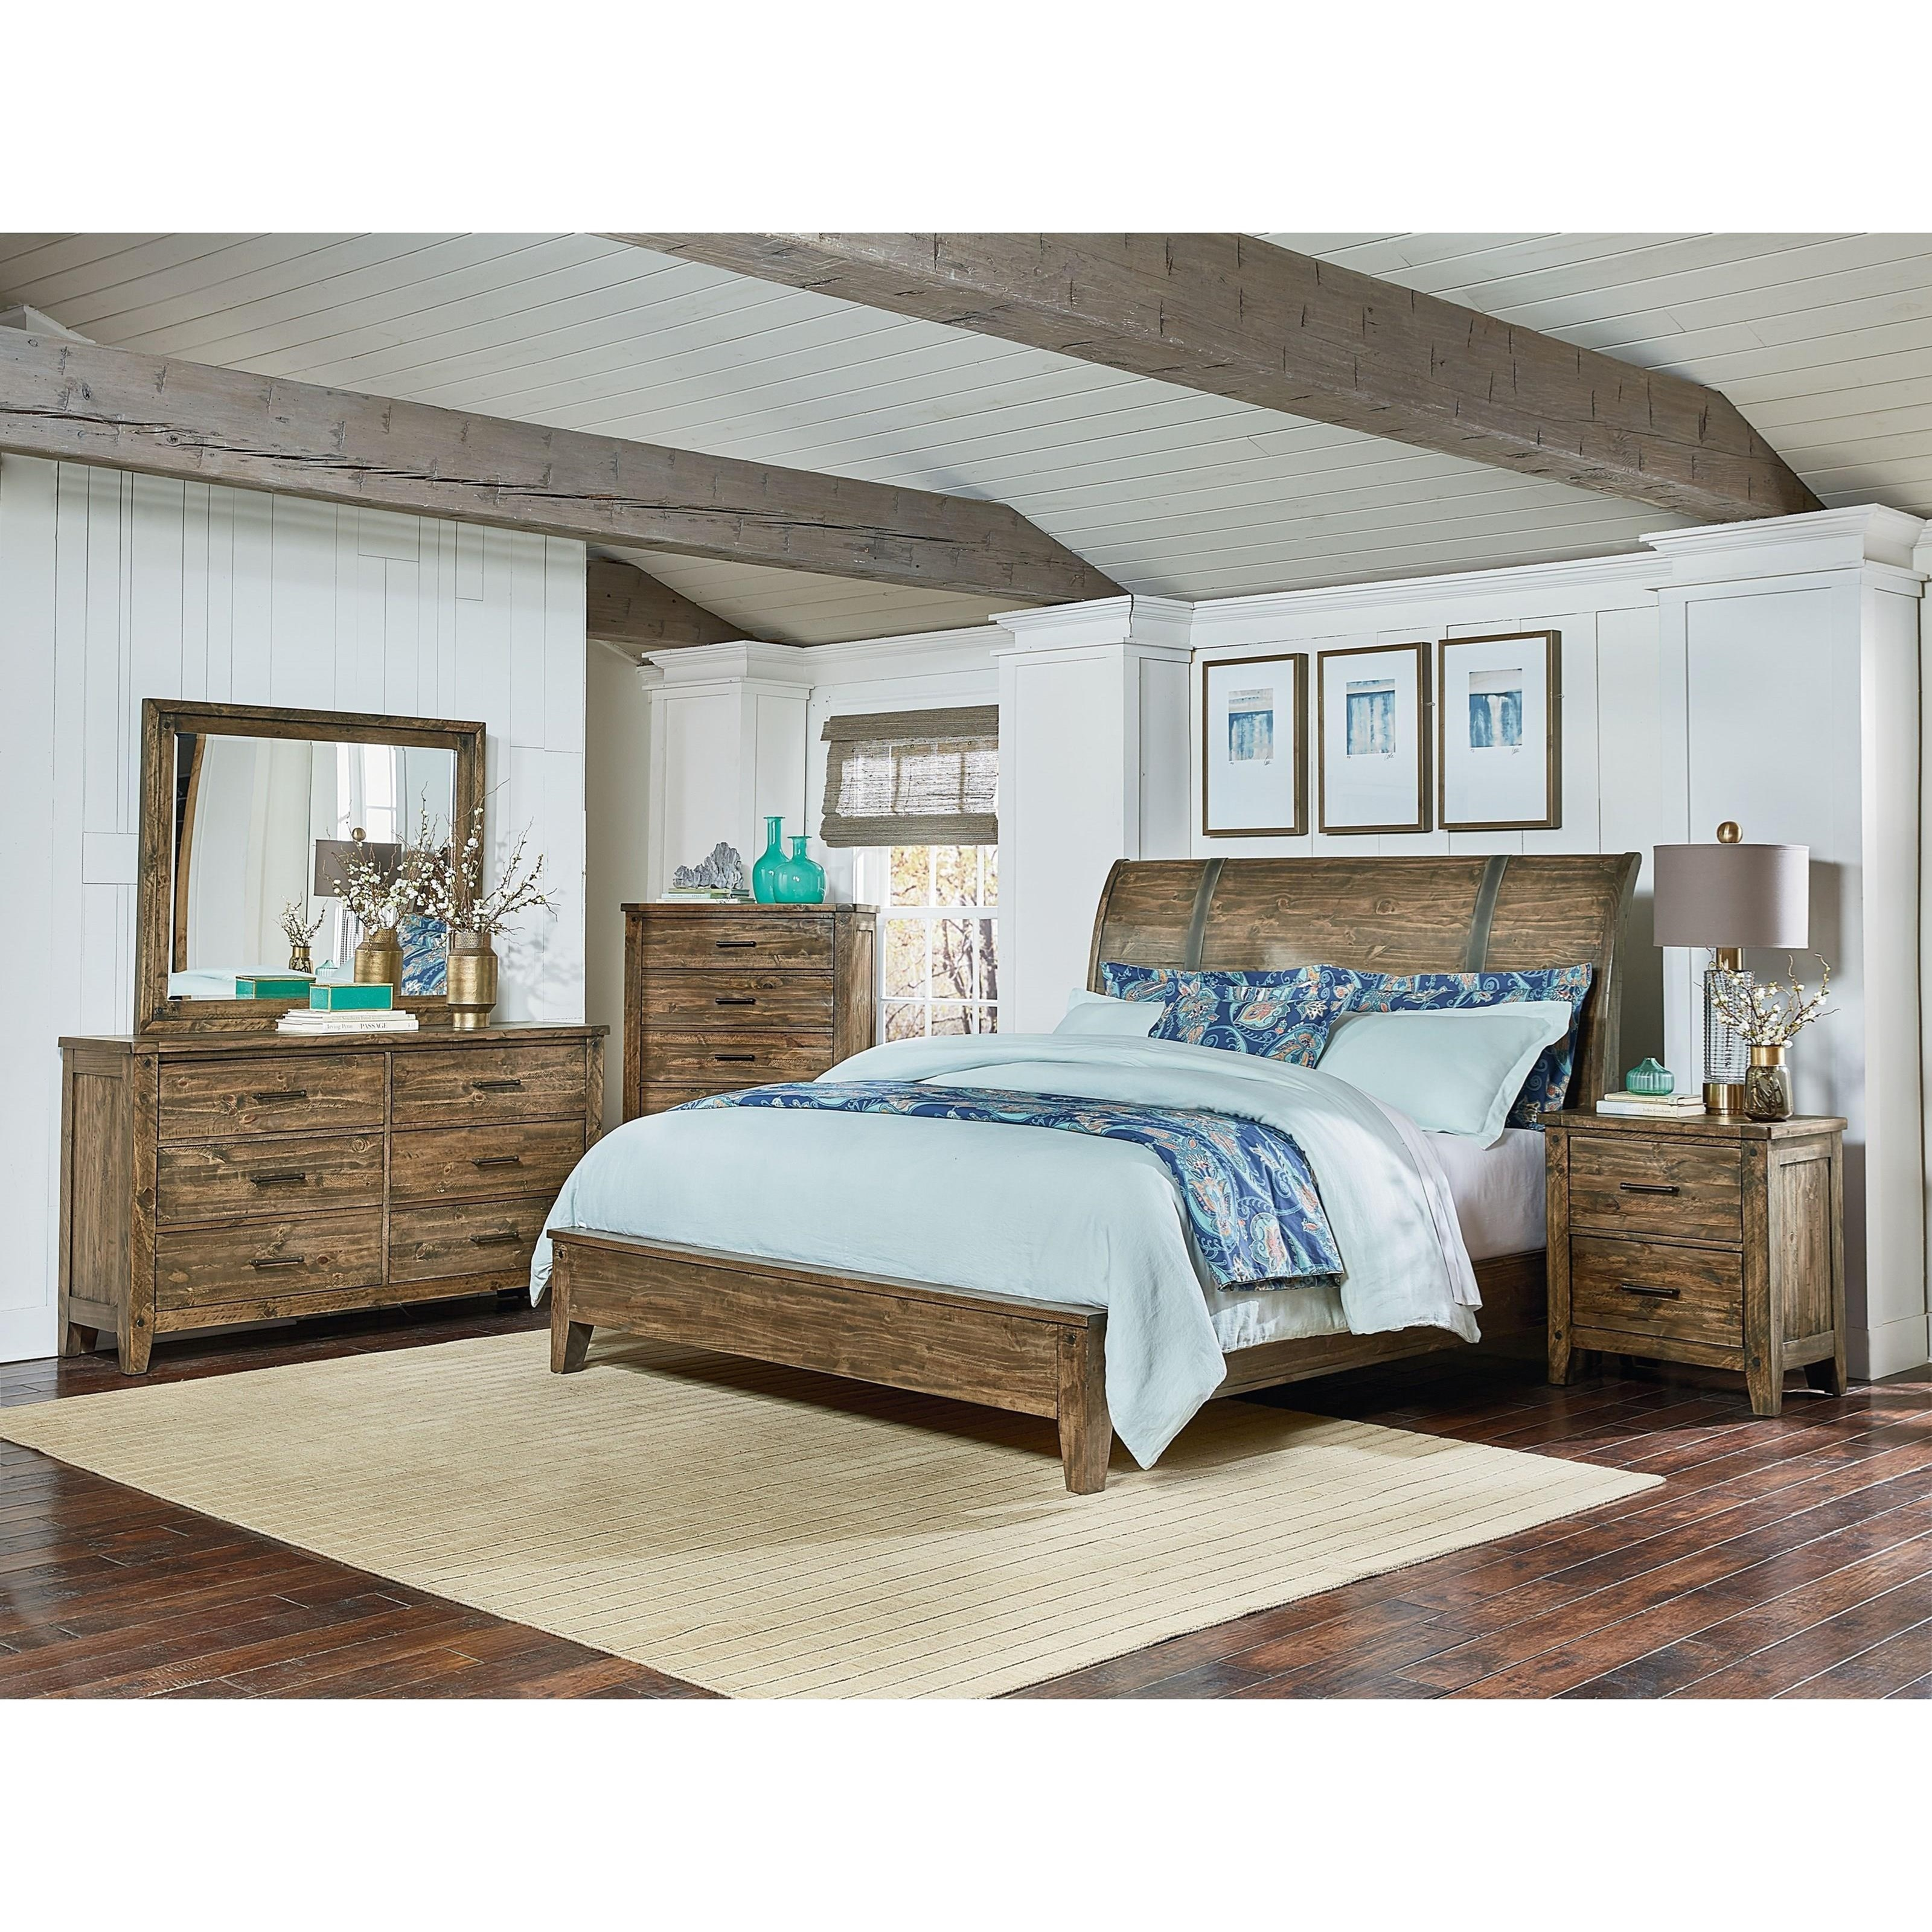 Standard furniture nelson 92509 rustic six drawer dresser for Great american homes